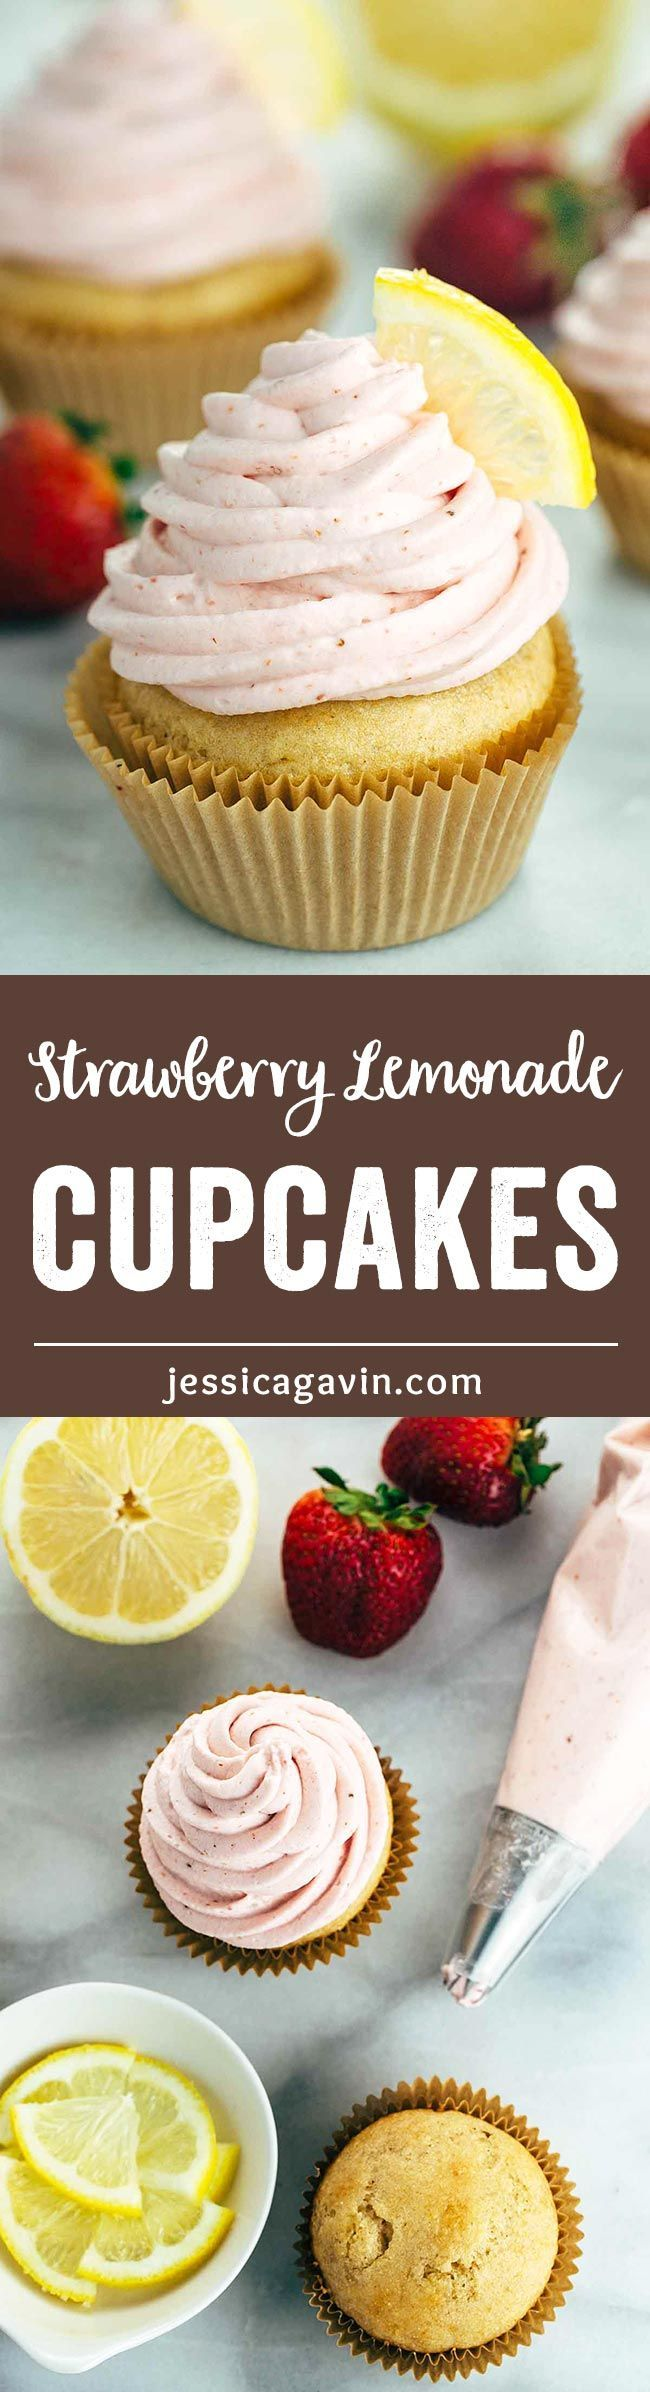 Strawberry Lemonade Cupcakes - These zesty lemon cupcakes are topped with fresh strawberry whipped cream for a light and fruity dessert. The perfect summertime treat! | www.jessicagavin.com